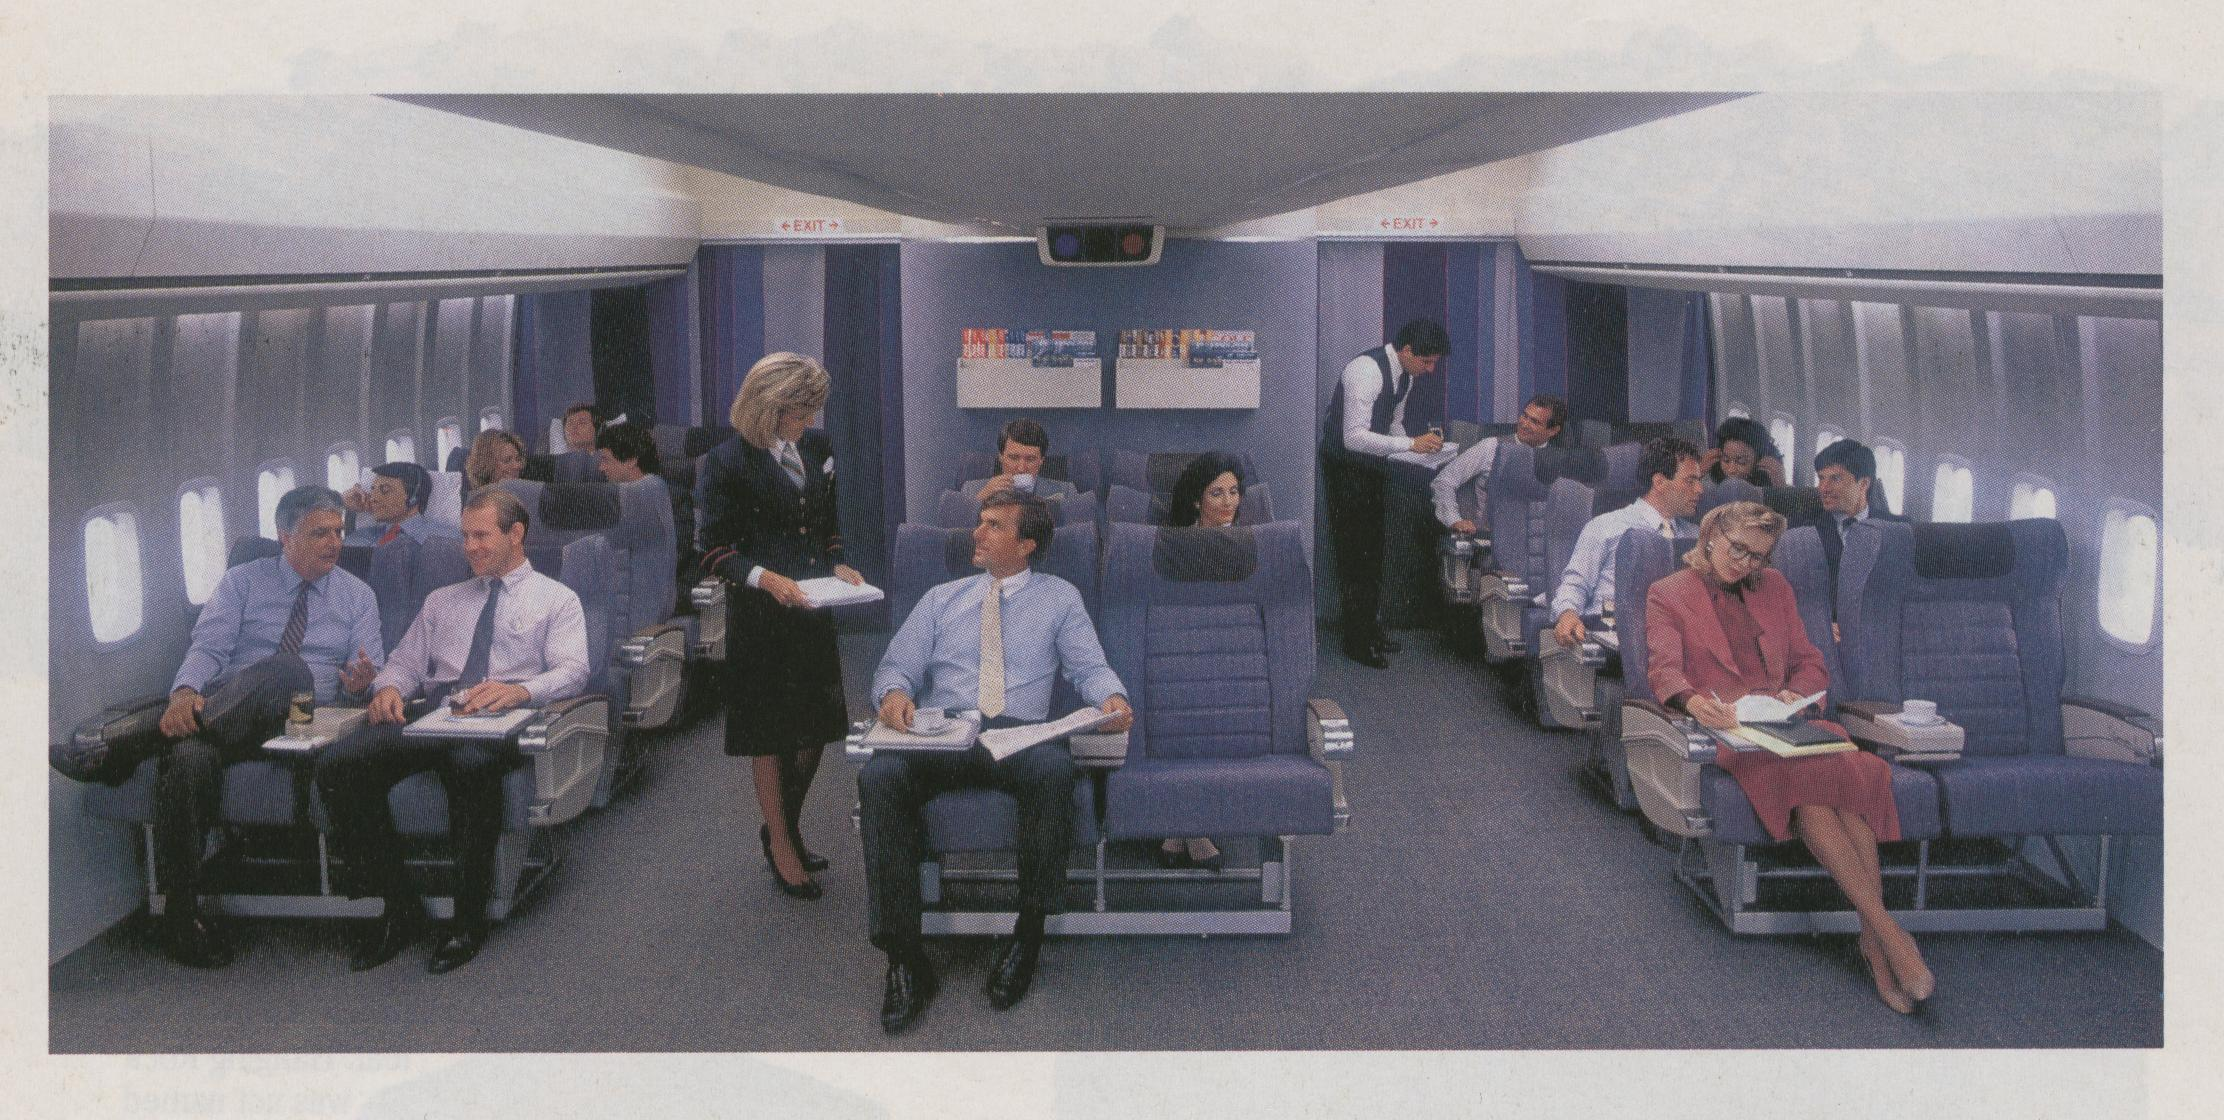 1990 A Pan Am 'Clipper Class' (business class) cabin with 6 across luxury seating.